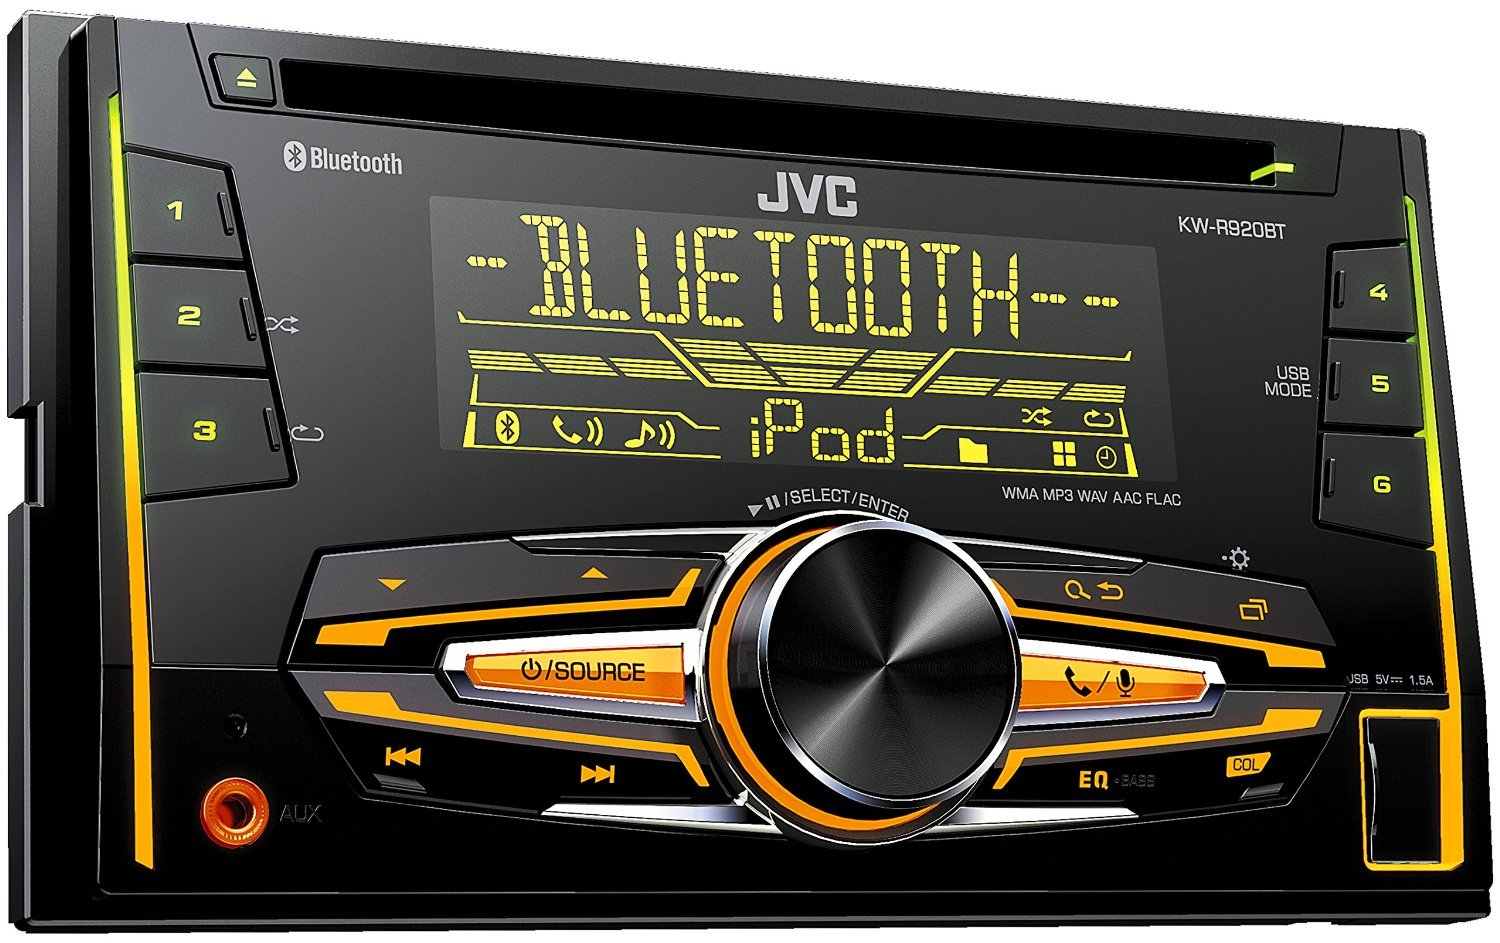 jvc kw r920bt test autoradio. Black Bedroom Furniture Sets. Home Design Ideas